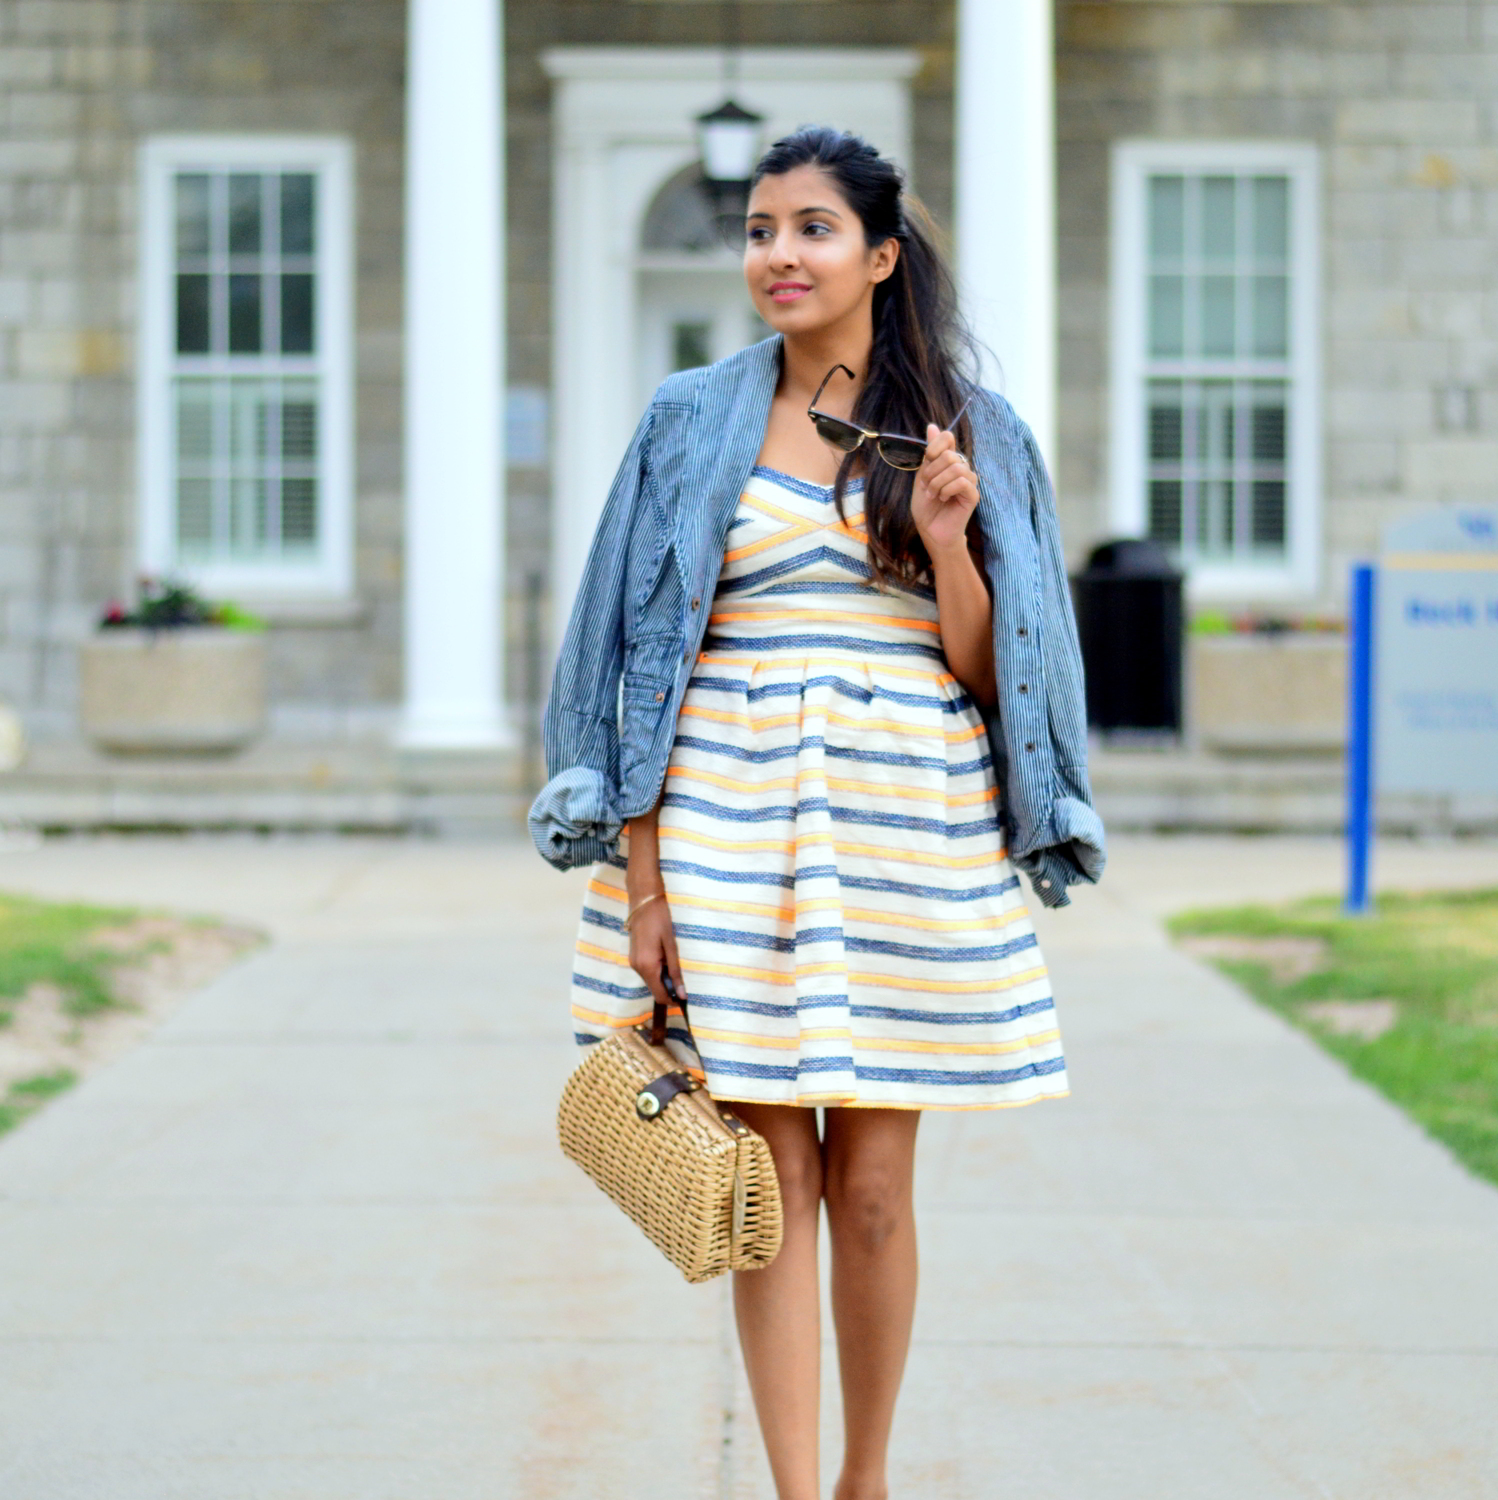 summer-striped-dress-denim-jacket-blogger-style-outfit 5